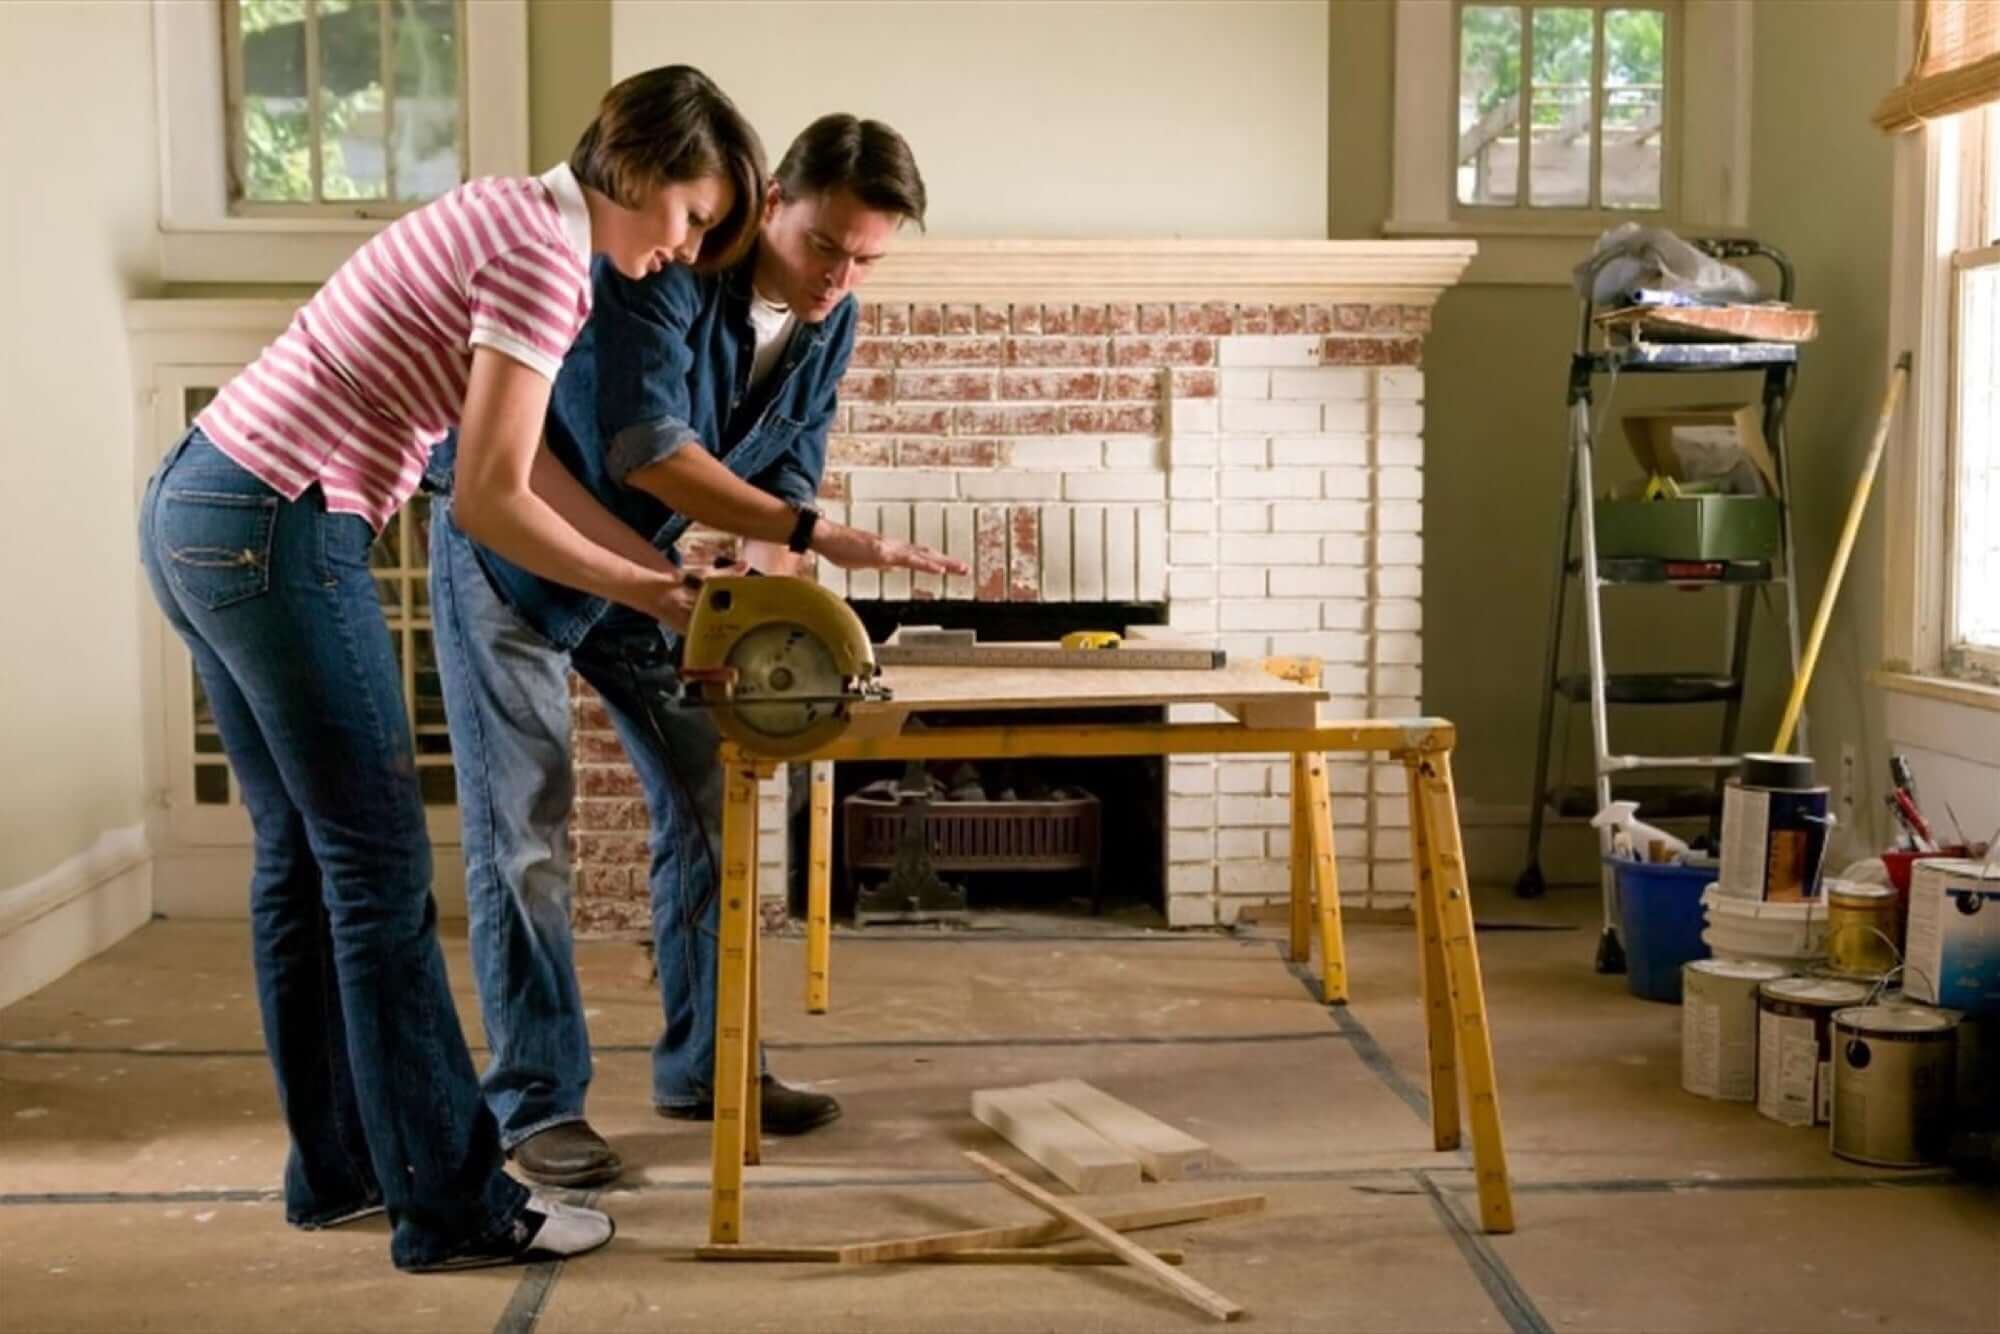 THE BEST USE OF YOUR TIME WHEN IT COMES TO RENOVATIONS